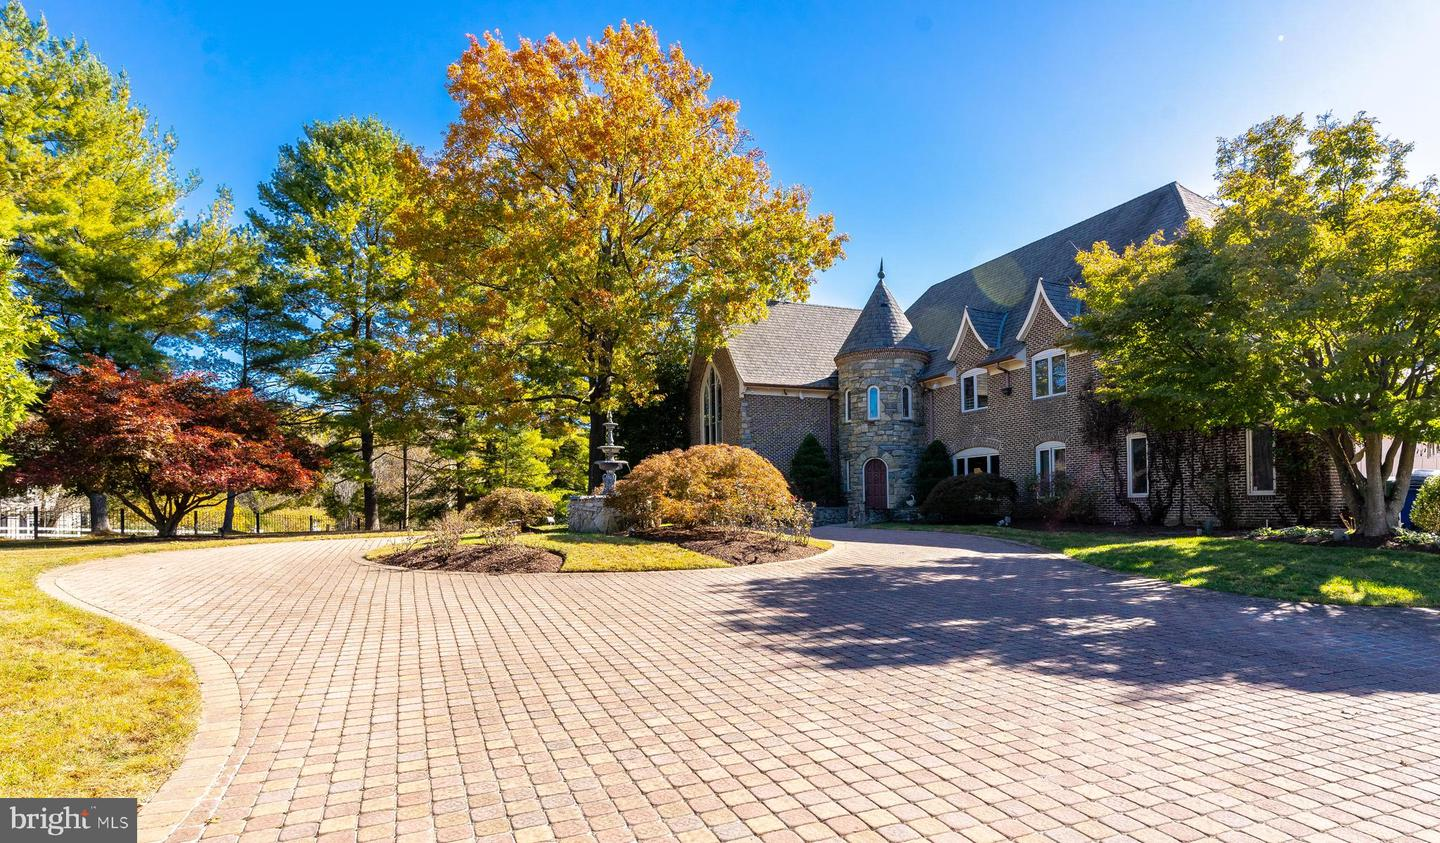 10415 STAPLEFORD HALL DRIVE, POTOMAC, Maryland